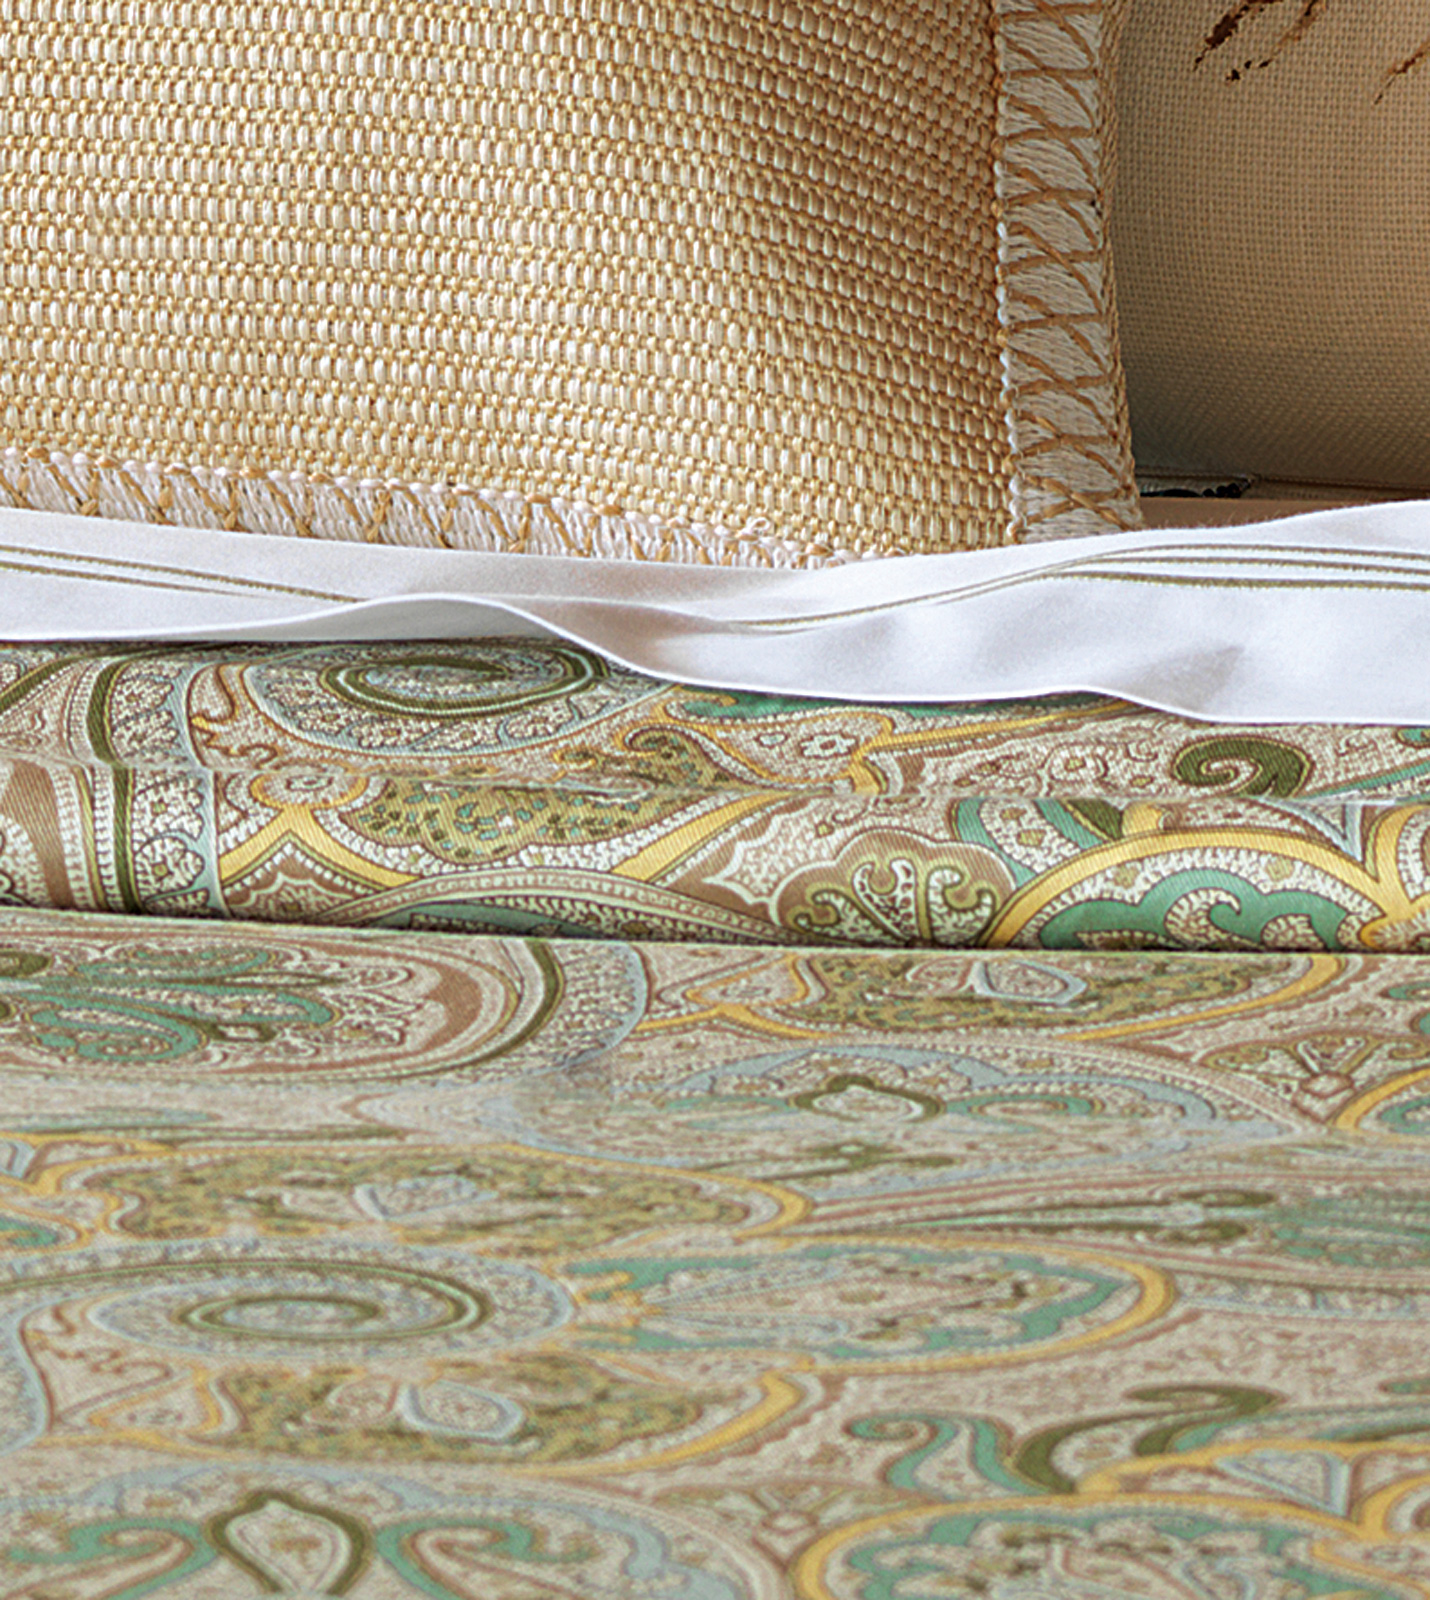 Hudson Park Bedding Haberdashery Queen Bed Skirt New Bed